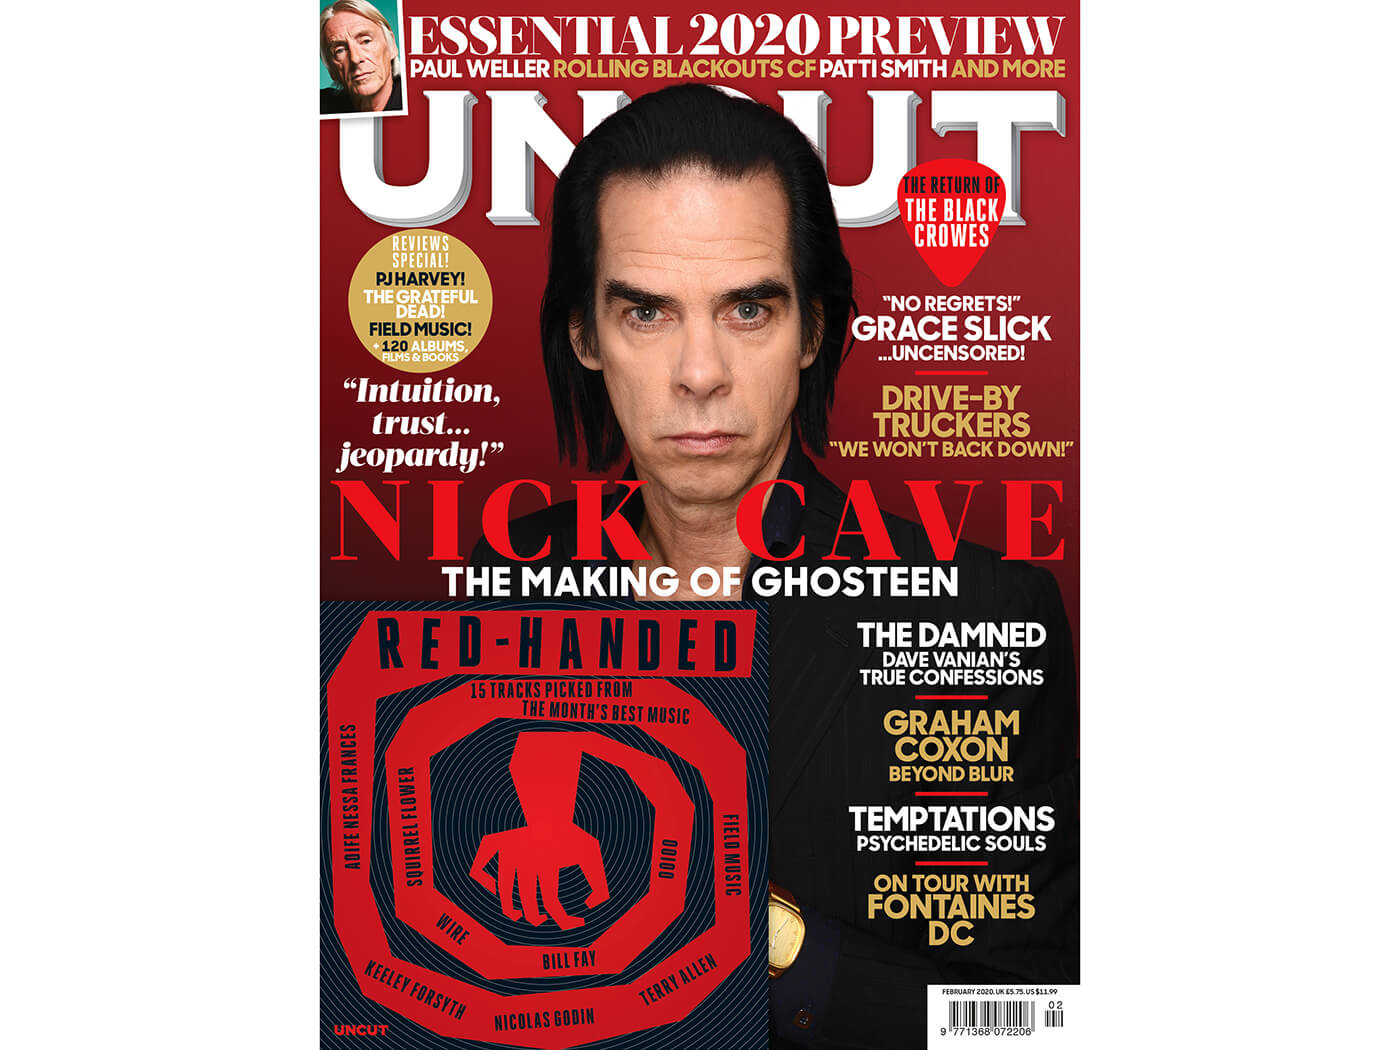 Nick Cave, Massive 2020 Preview, Grace Slick, Fontaines D.C. and more in the new Uncut - UNCUT